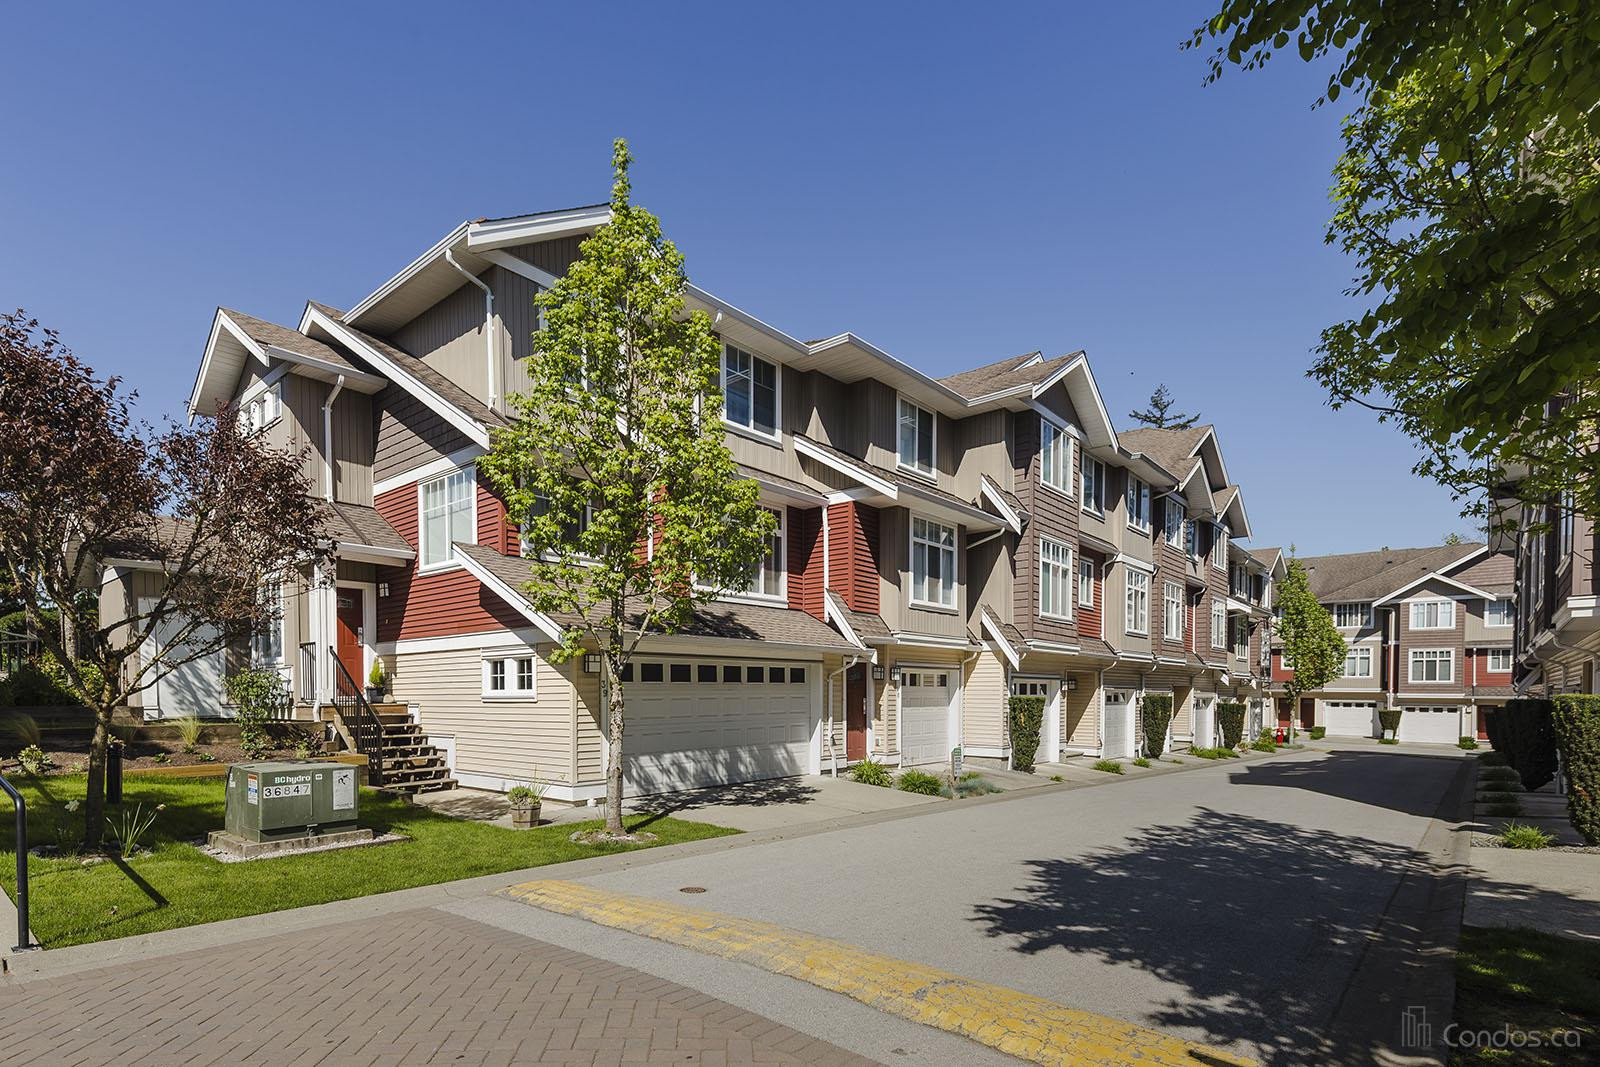 Two Blue at 19455 65 Ave, Surrey 1